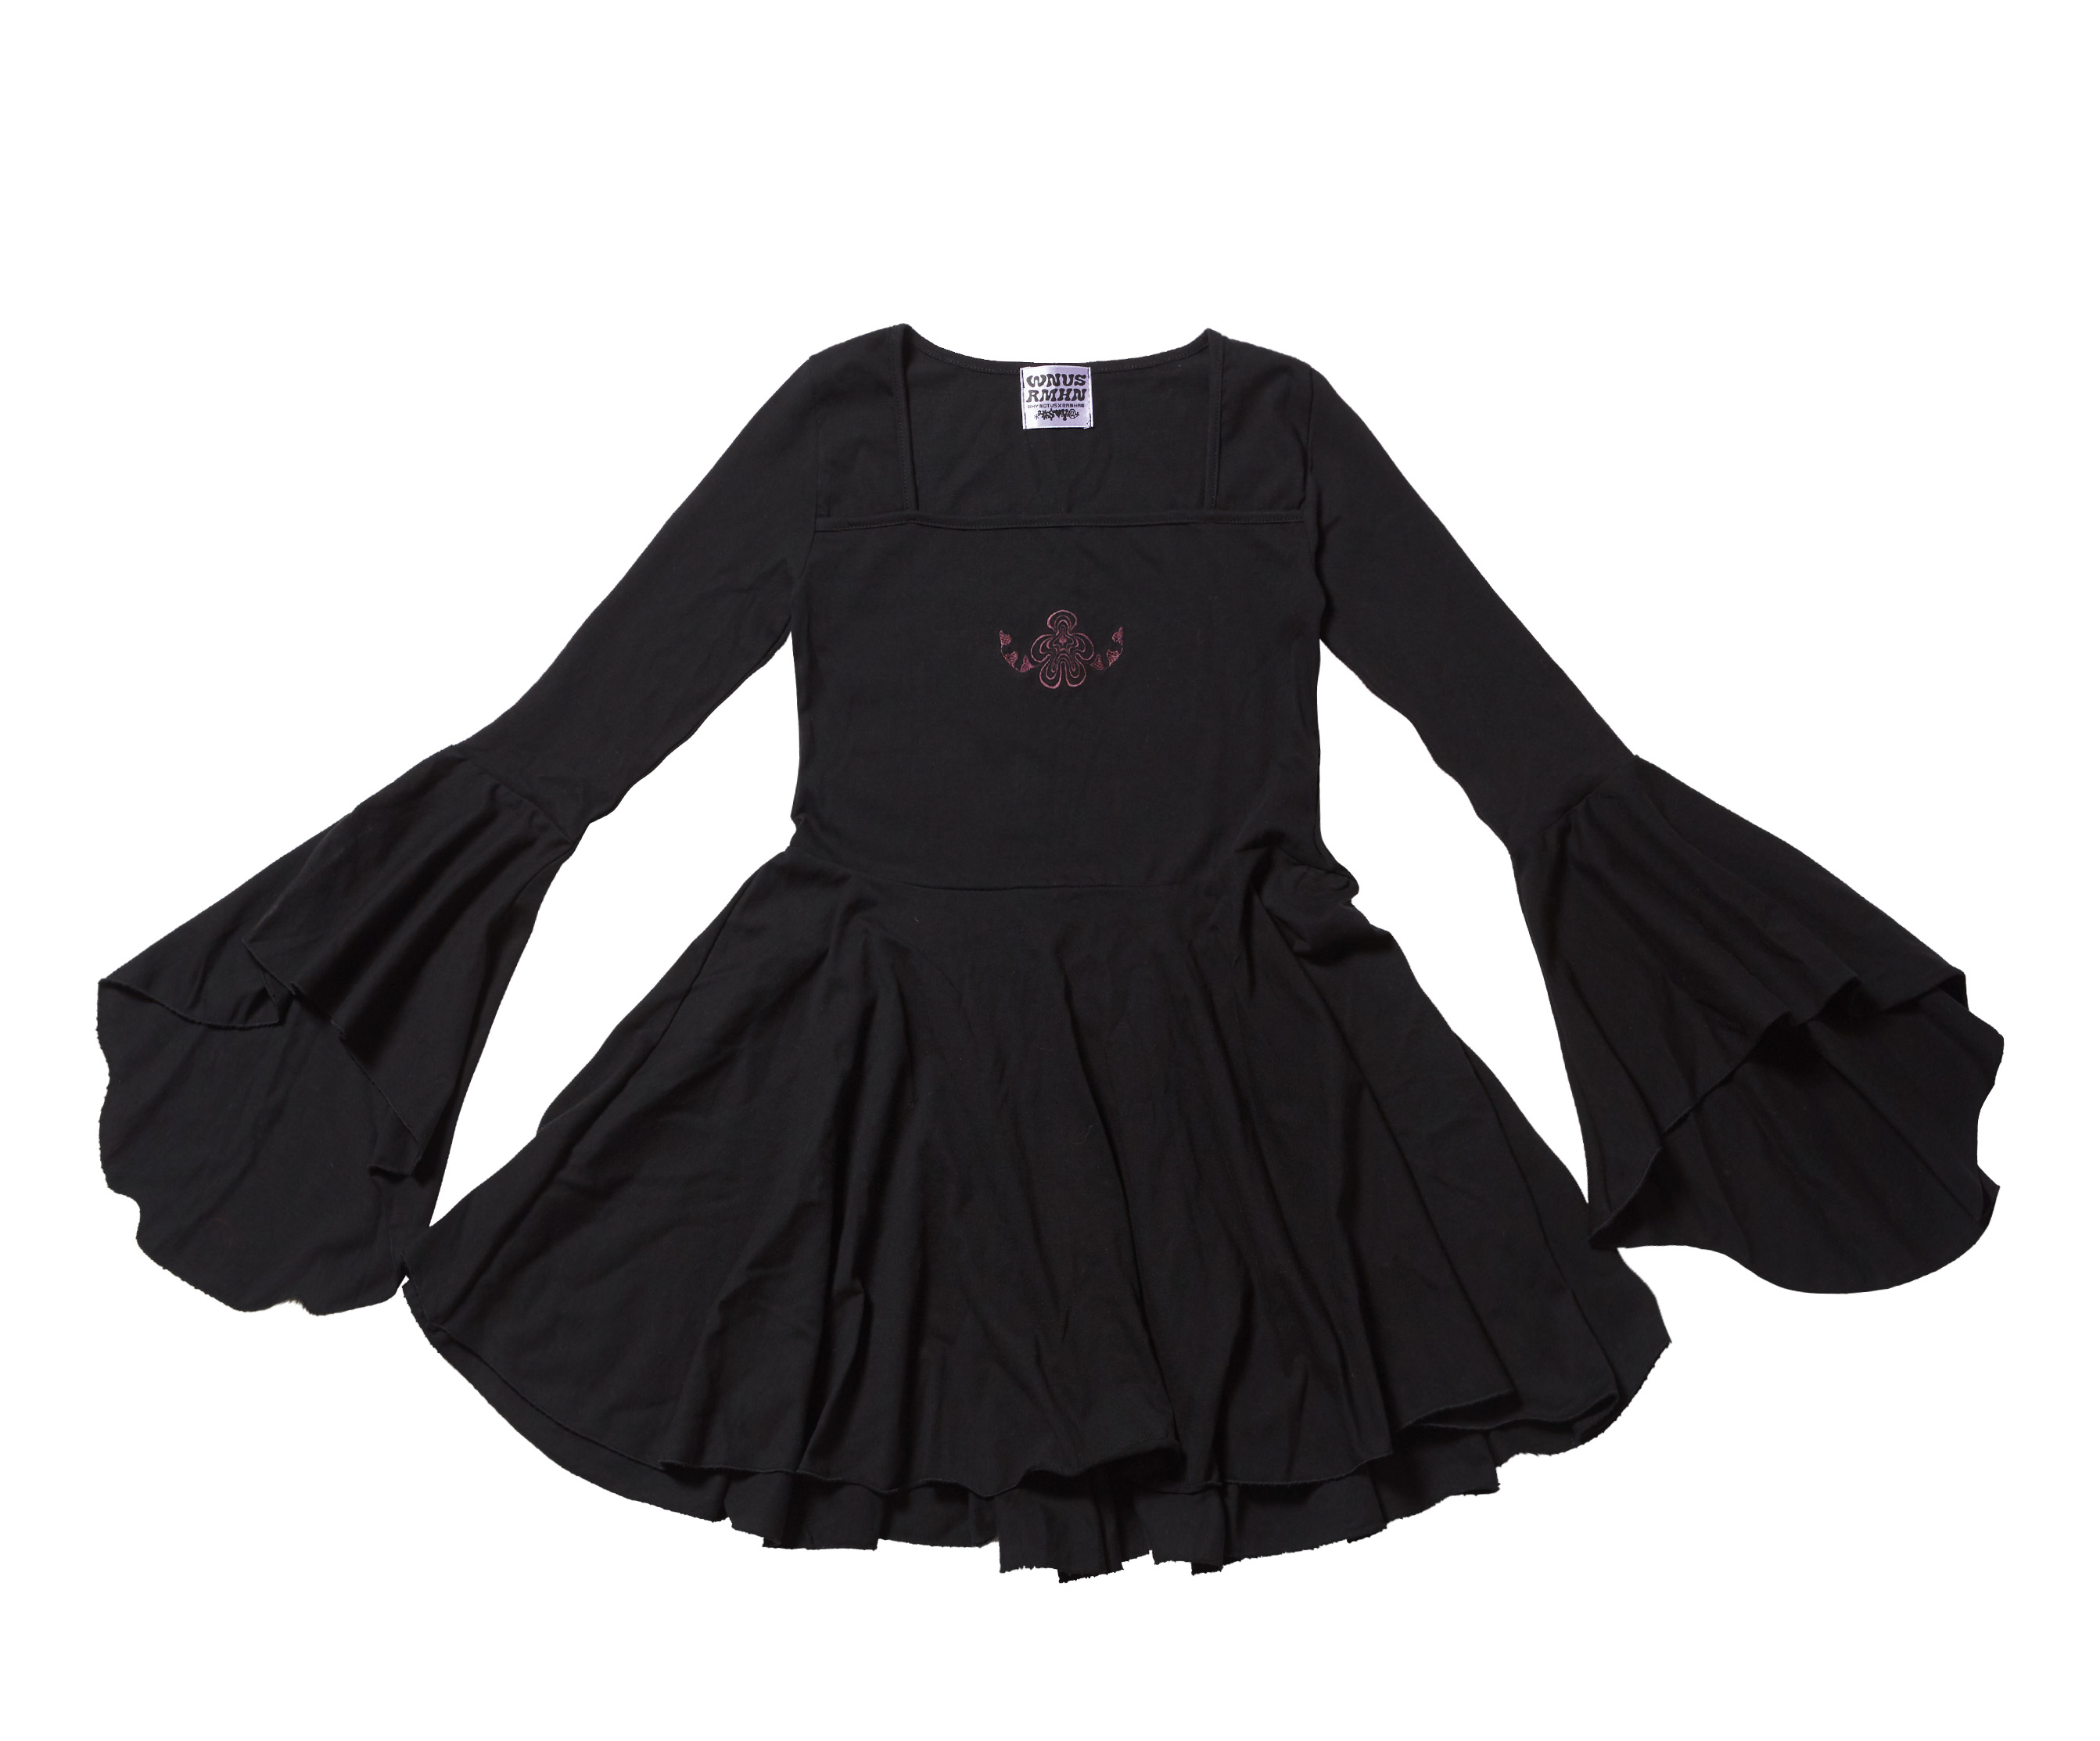 rock chic dress - black